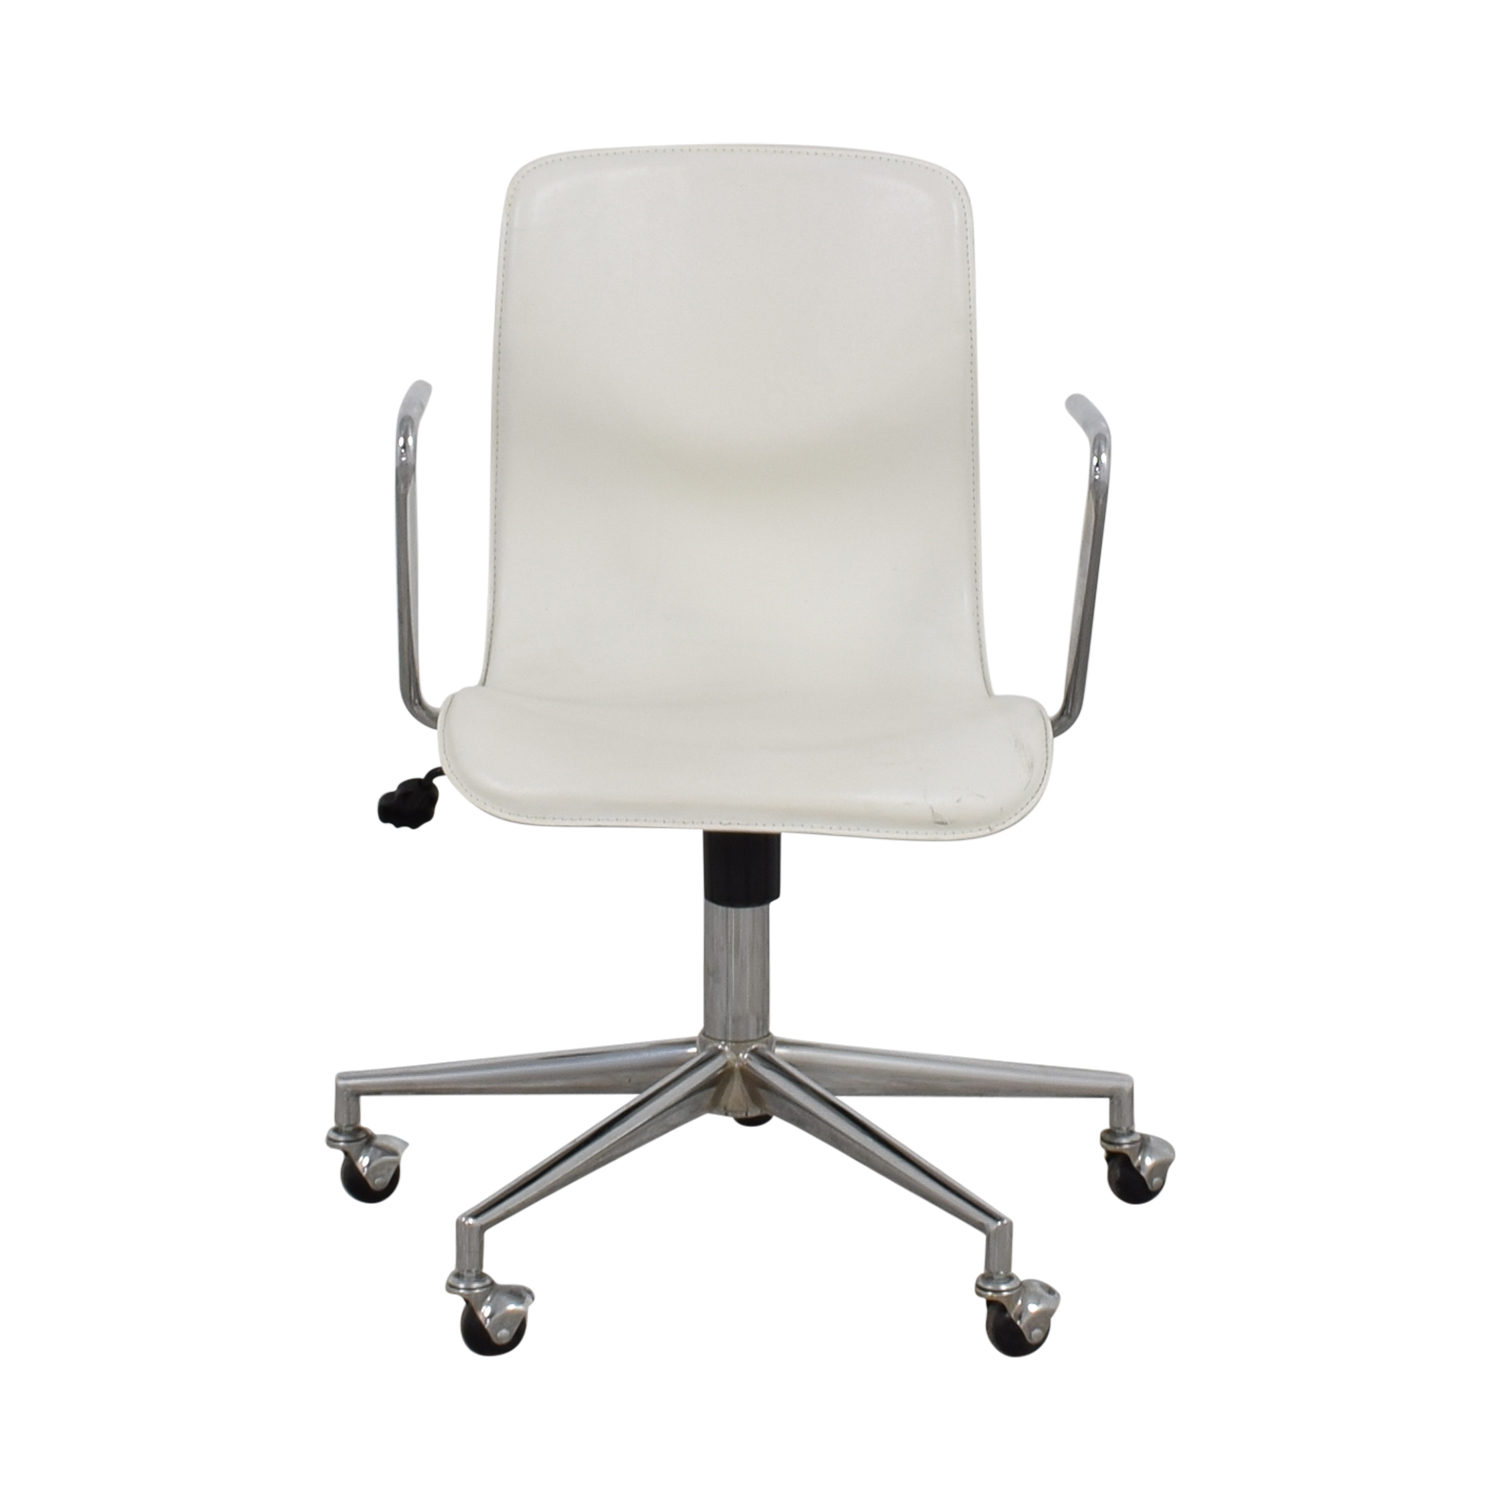 eamessoftpadwhite replica eames management chair pad interior boardroom office white secrets soft